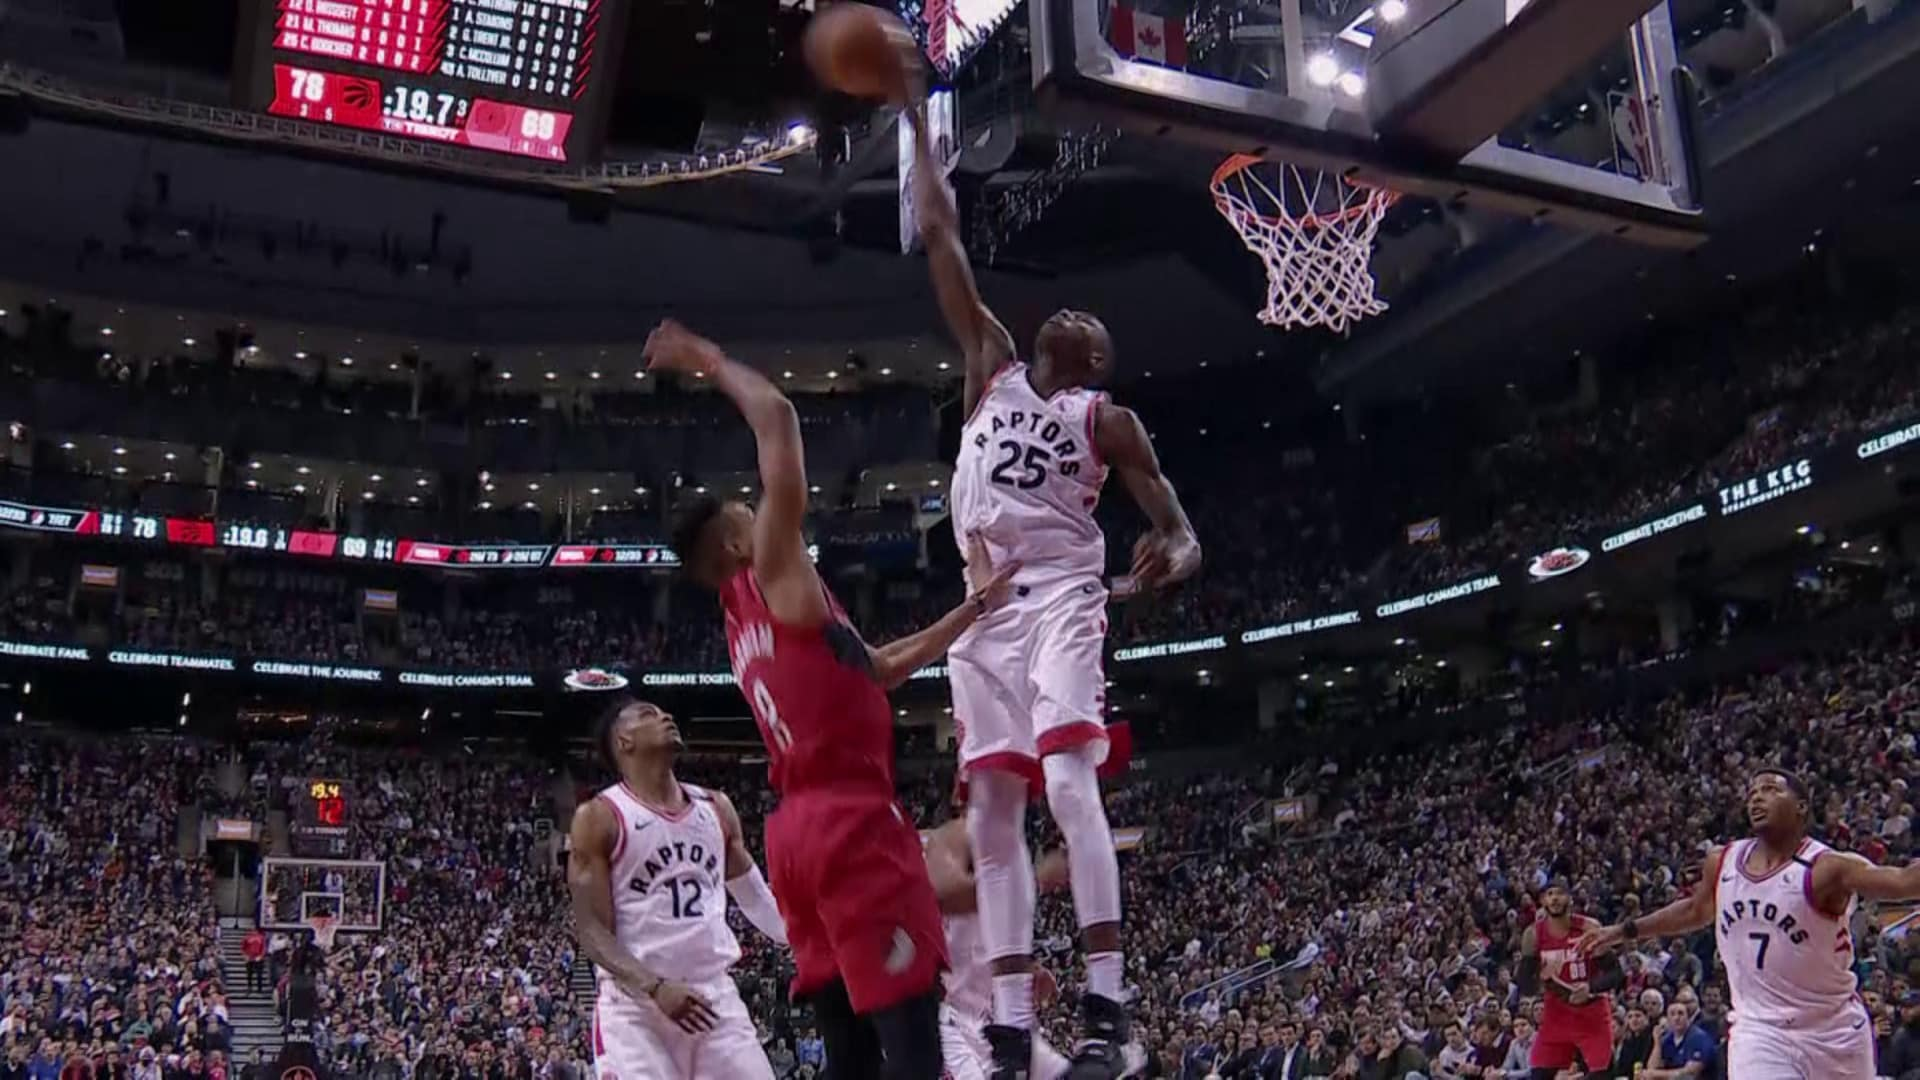 Raptors Highlights: Boucher Block - January 7, 2020